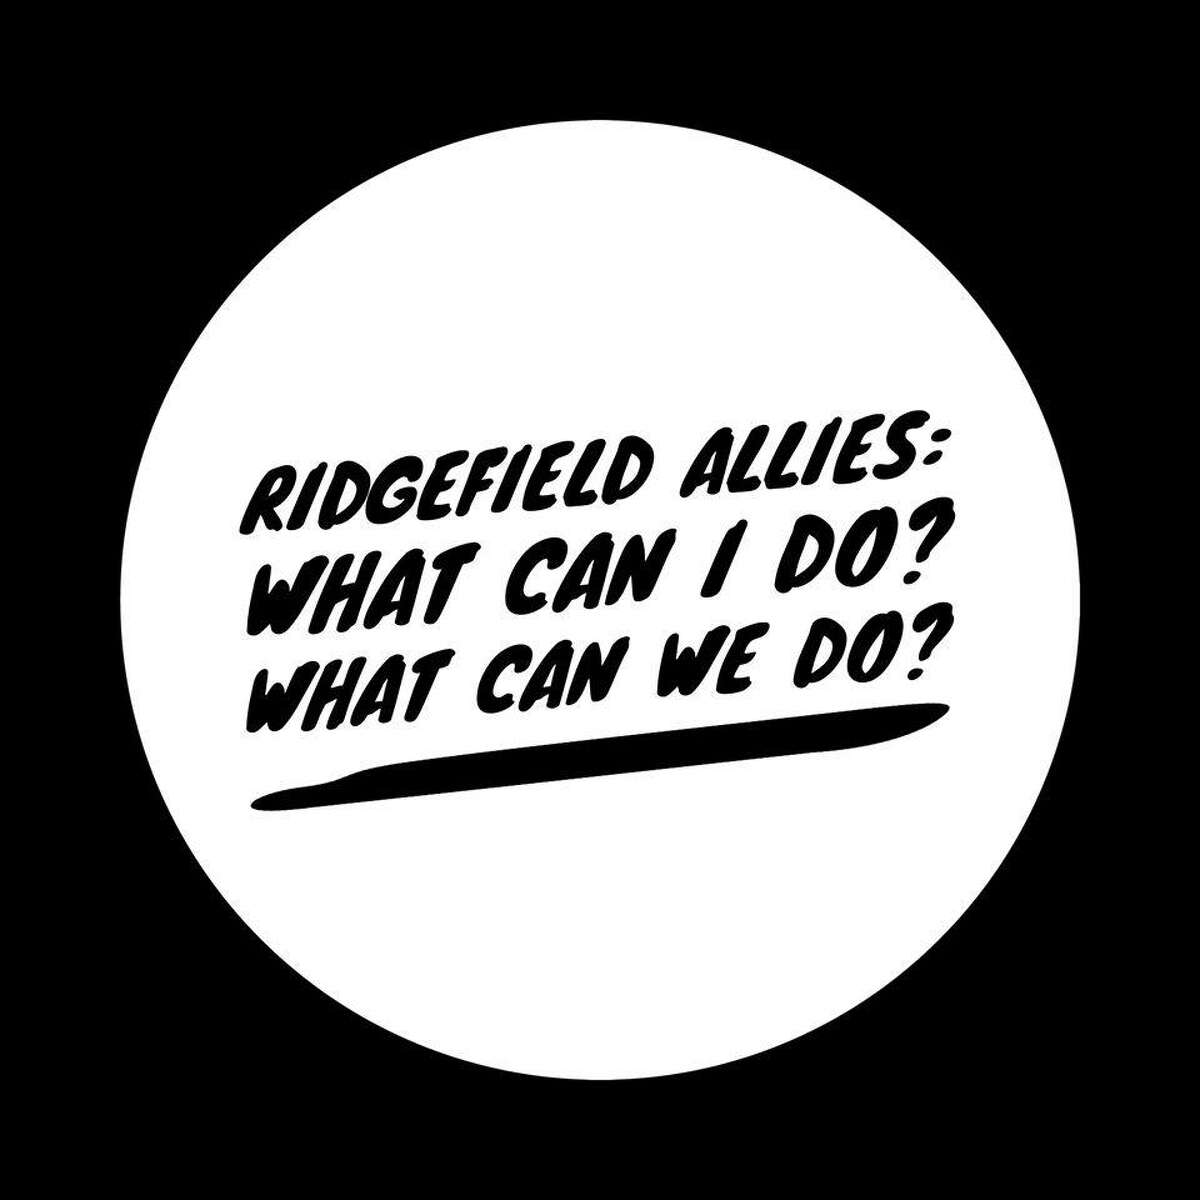 Ridgefield Allies is holding a logo contest to promote the organization's mission of awareness and antiracism.